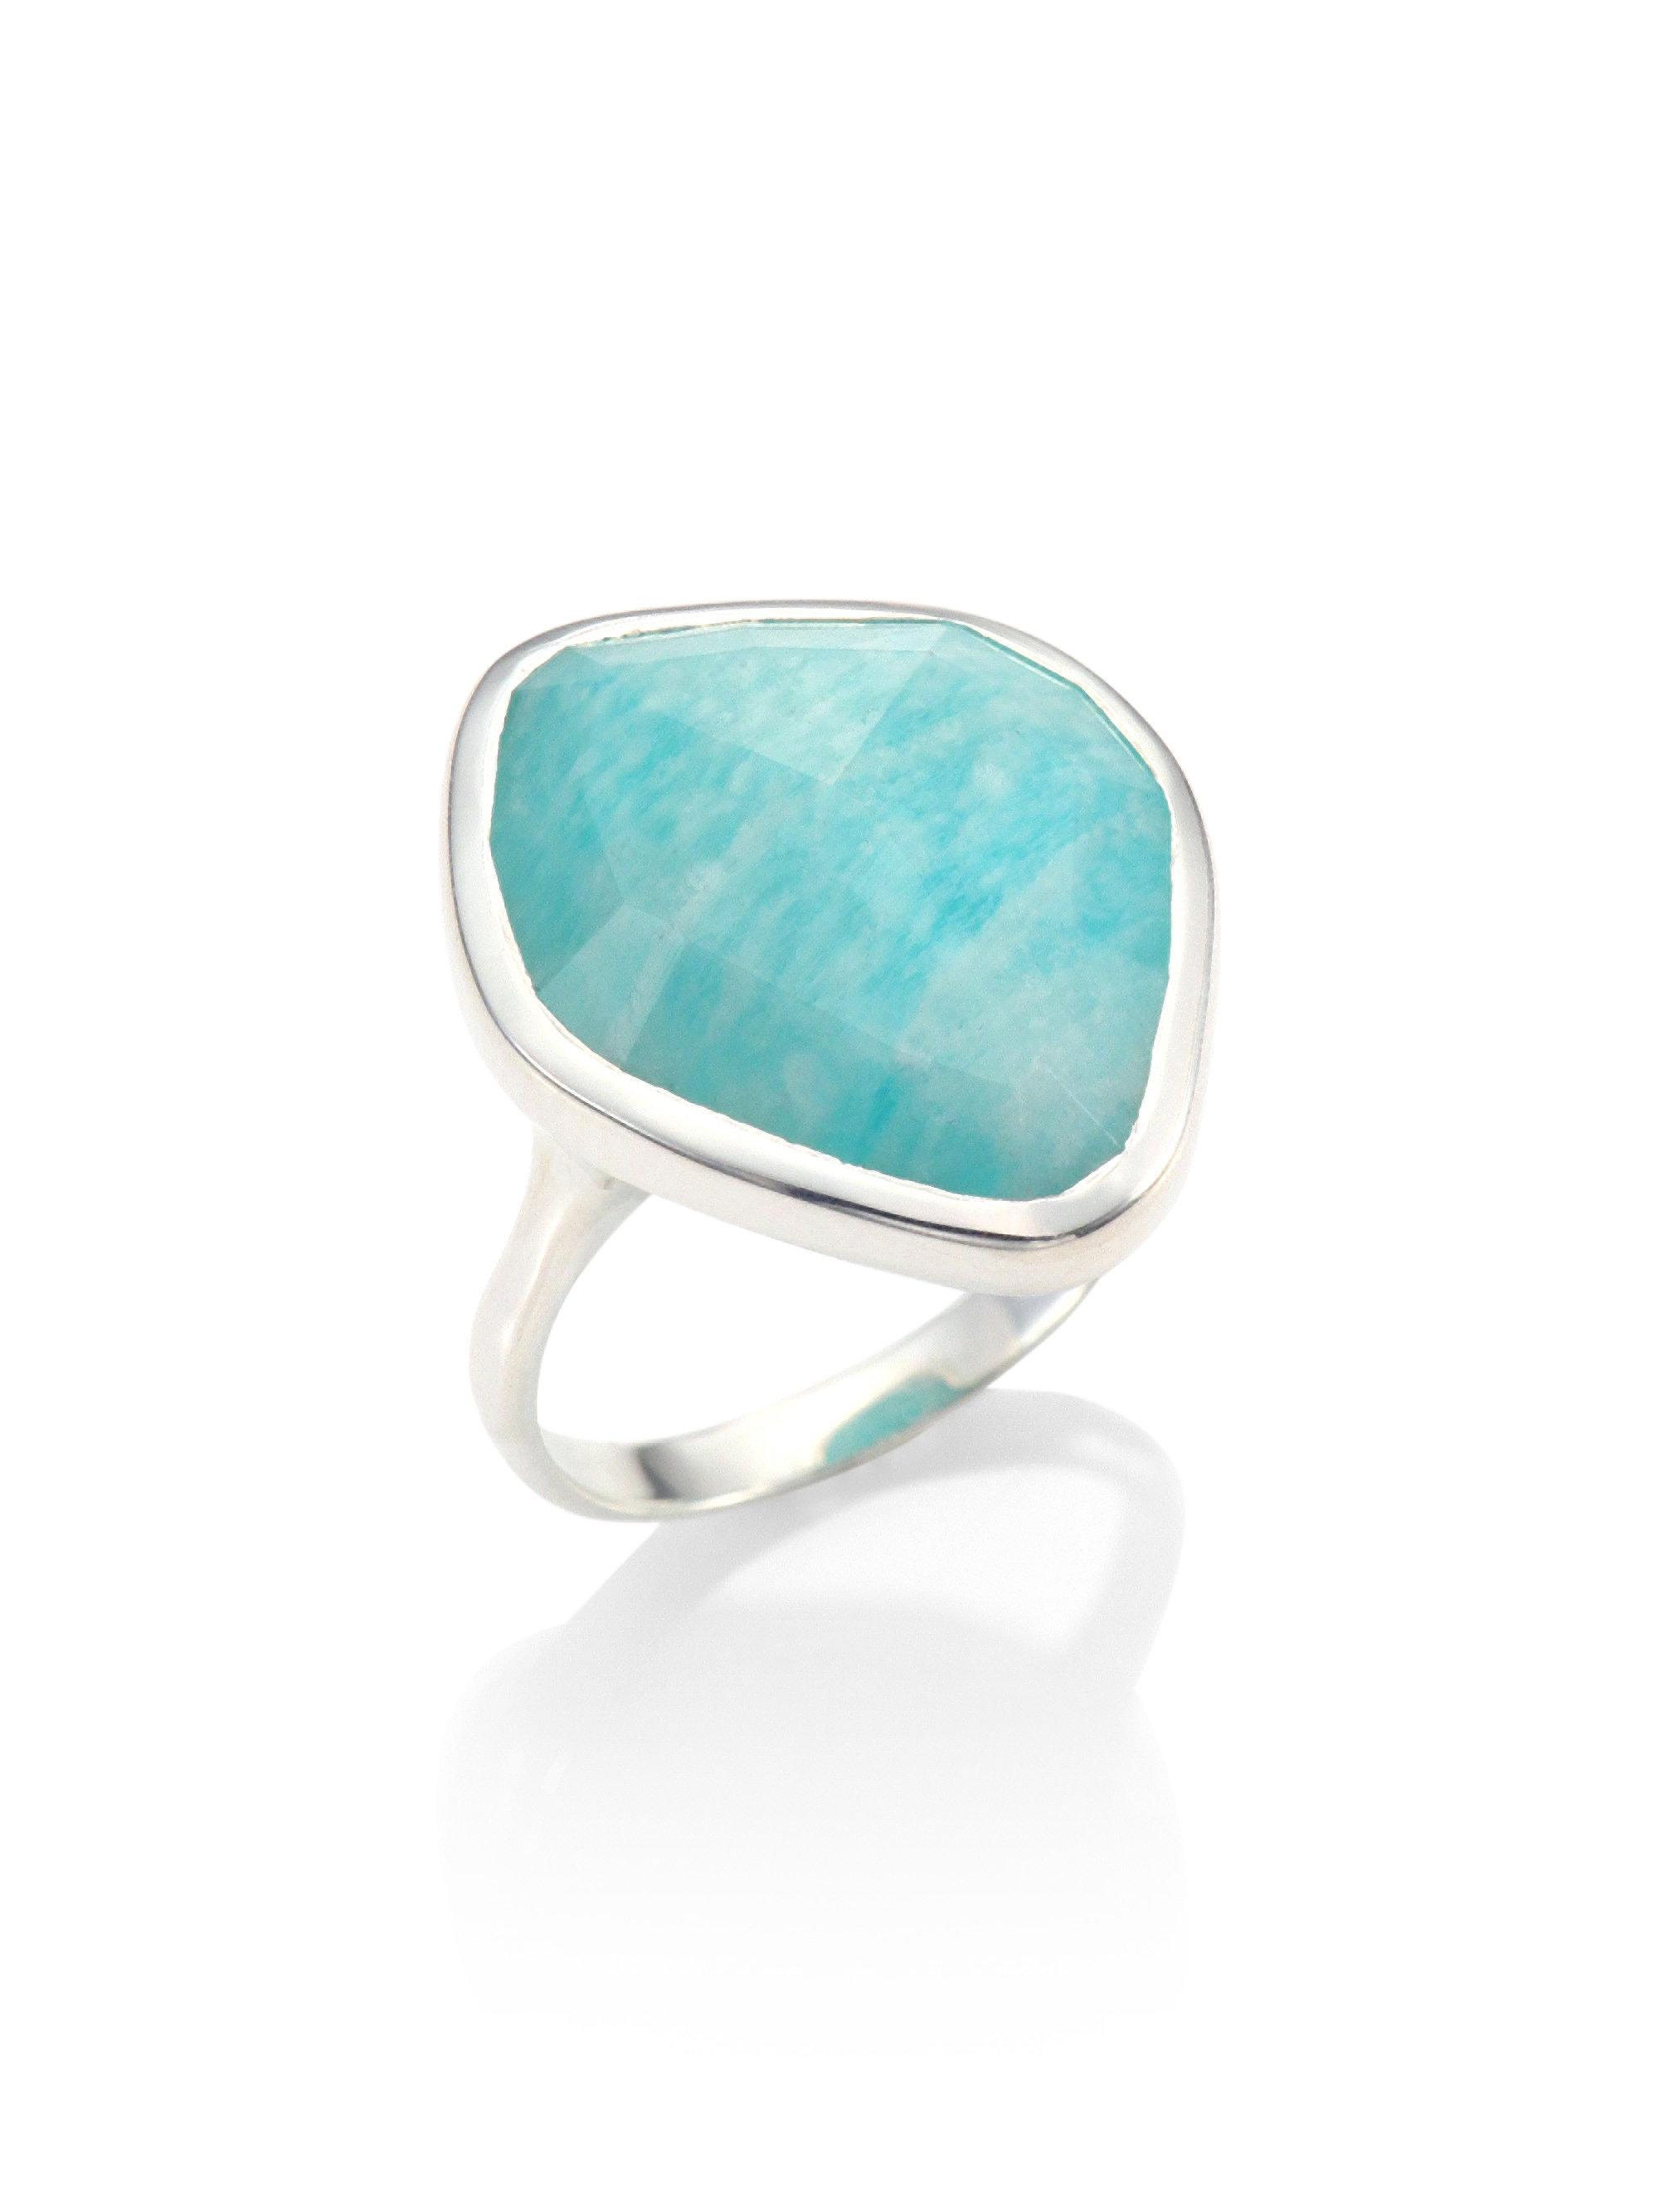 Sterling Silver Baja Ring Amazonite Monica Vinader hao51b4F